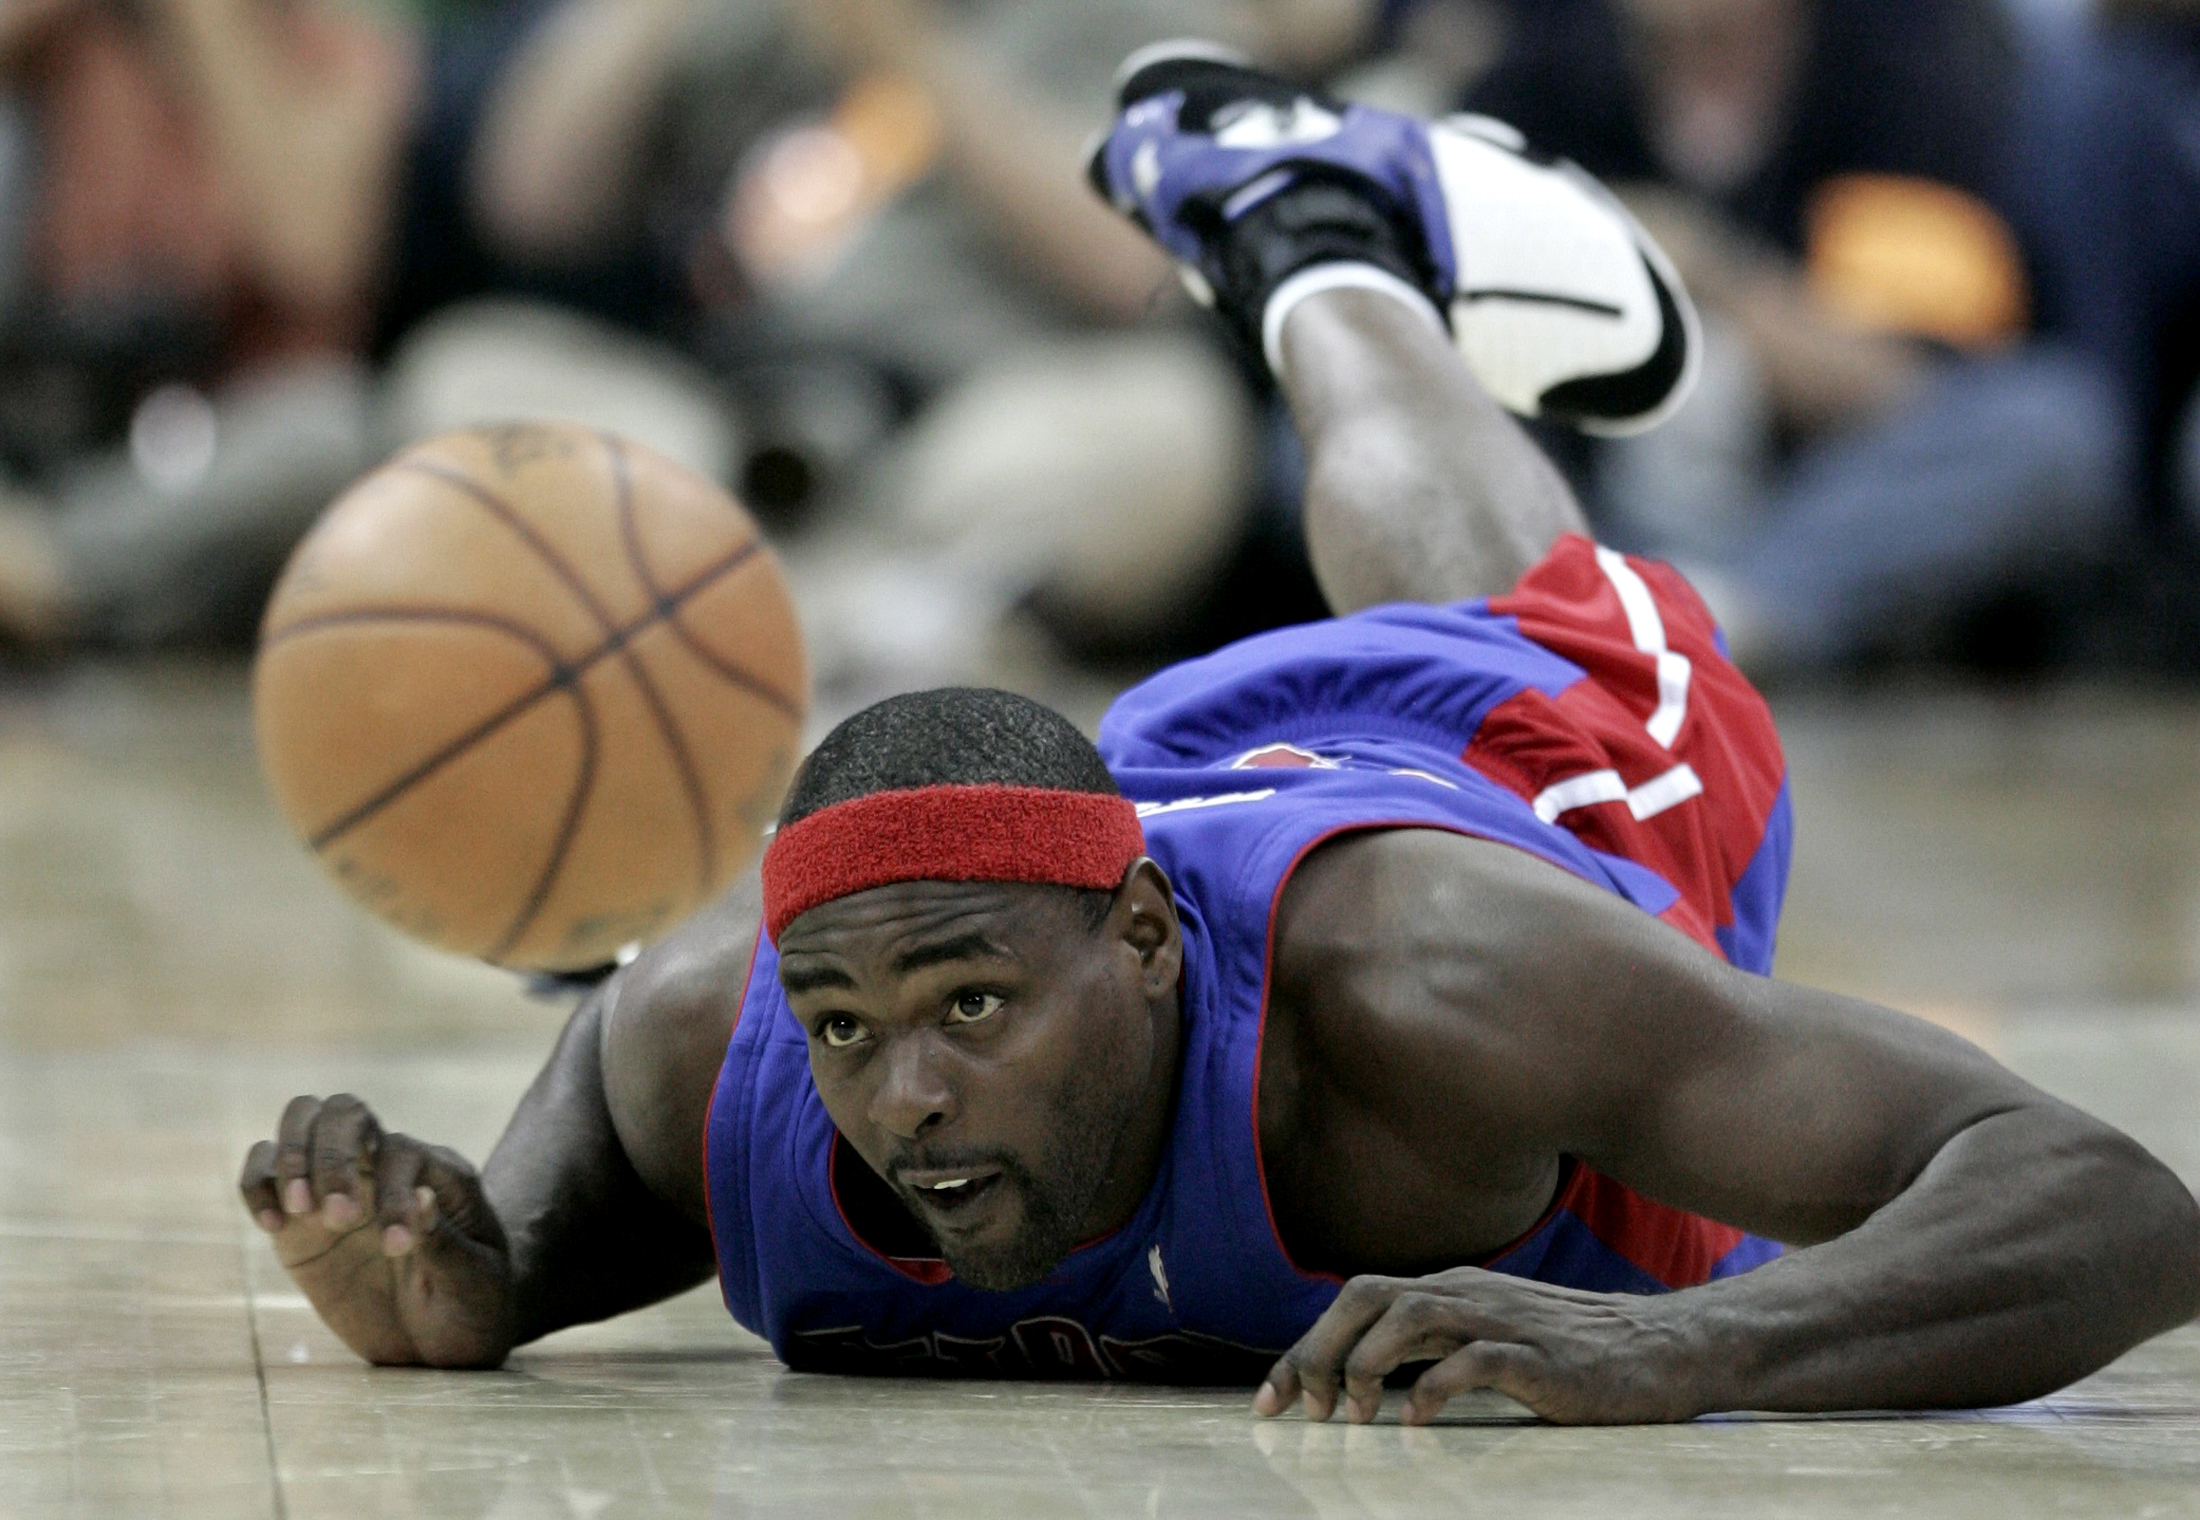 Detroit Pistons' Chris Webber dives for a loose ball during play against the Cleveland Cavaliers in Game 4 of the NBA's Eastern Conference basketball series in Cleveland, Ohio, May 29, 2007. REUTERS/Aaron Josefczyk